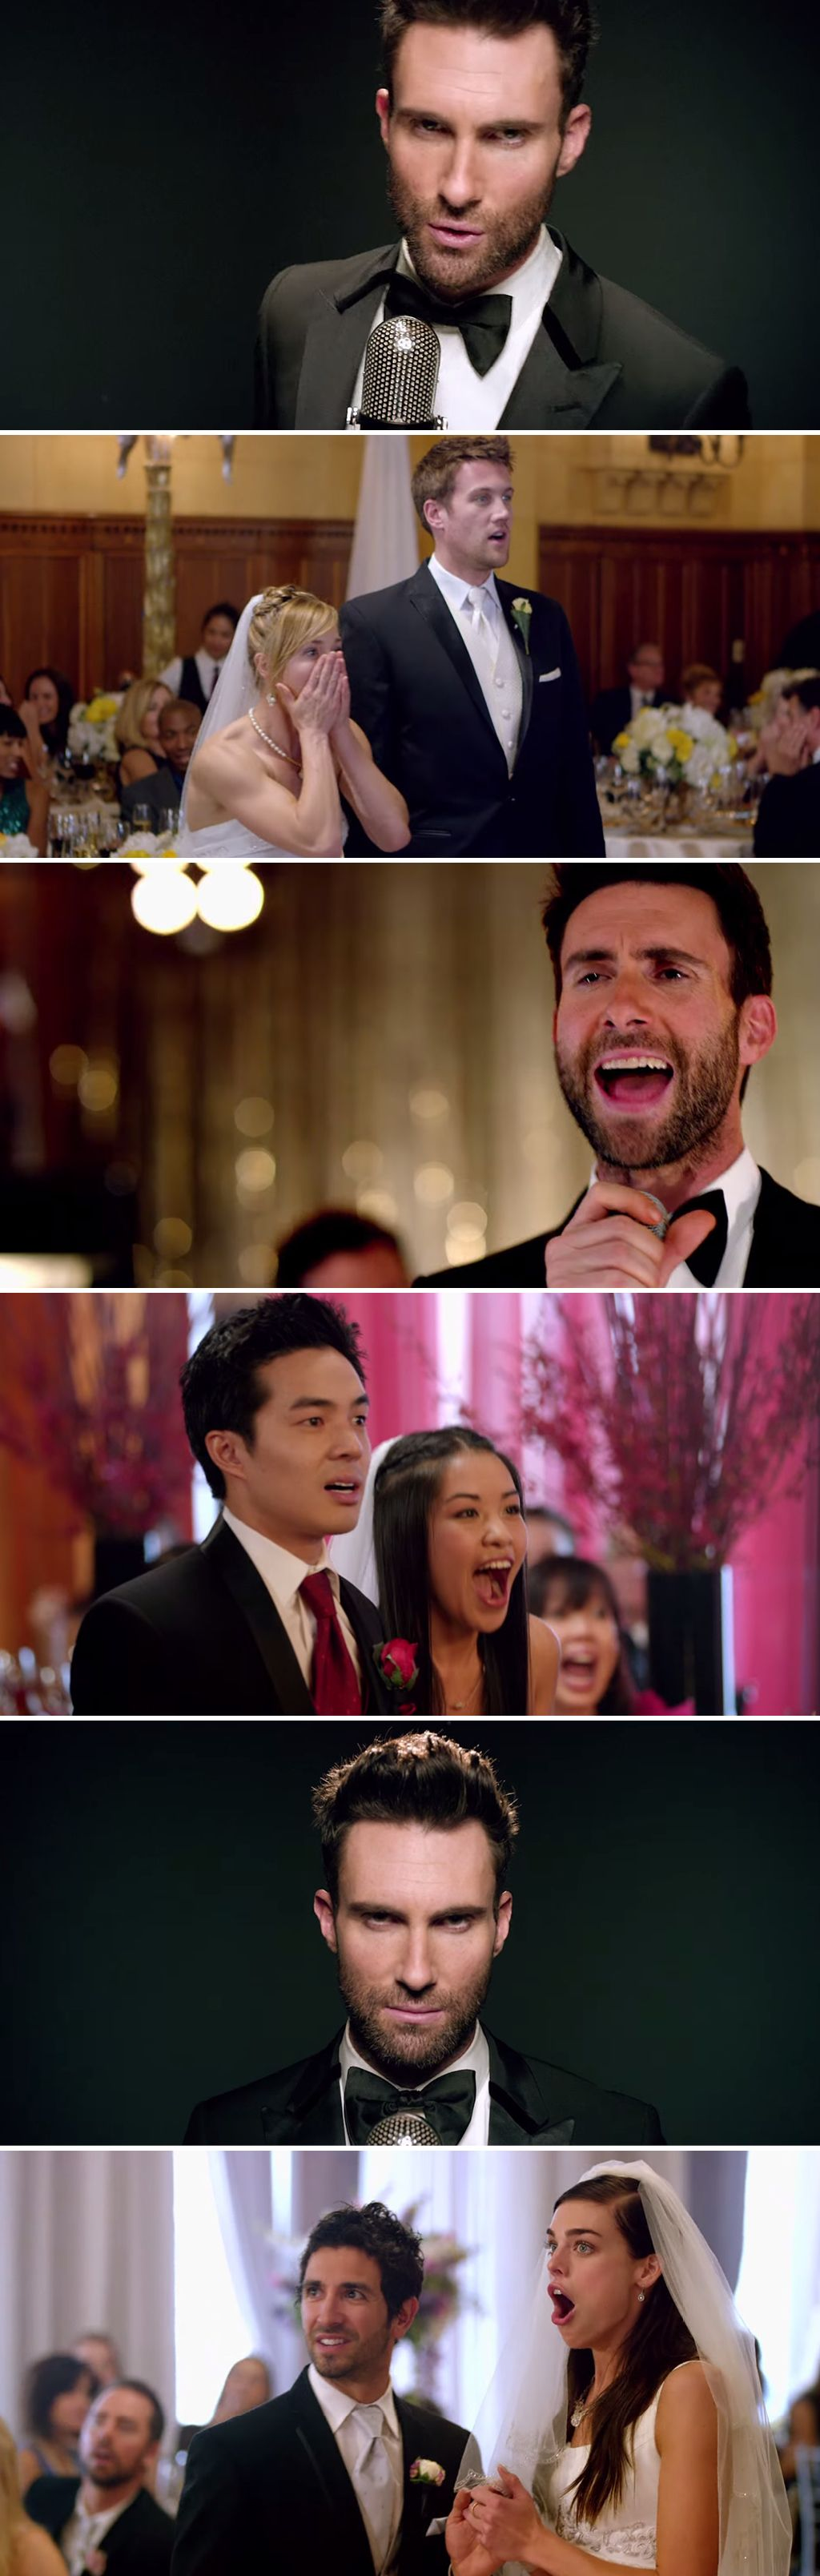 Maroon5 Crash Real Weddings In Their New Video For The Ridiculously Catchy Jam Sugar And It S Wonderful We Re Going To Drive Acr Maroon 5 Singer Maroon